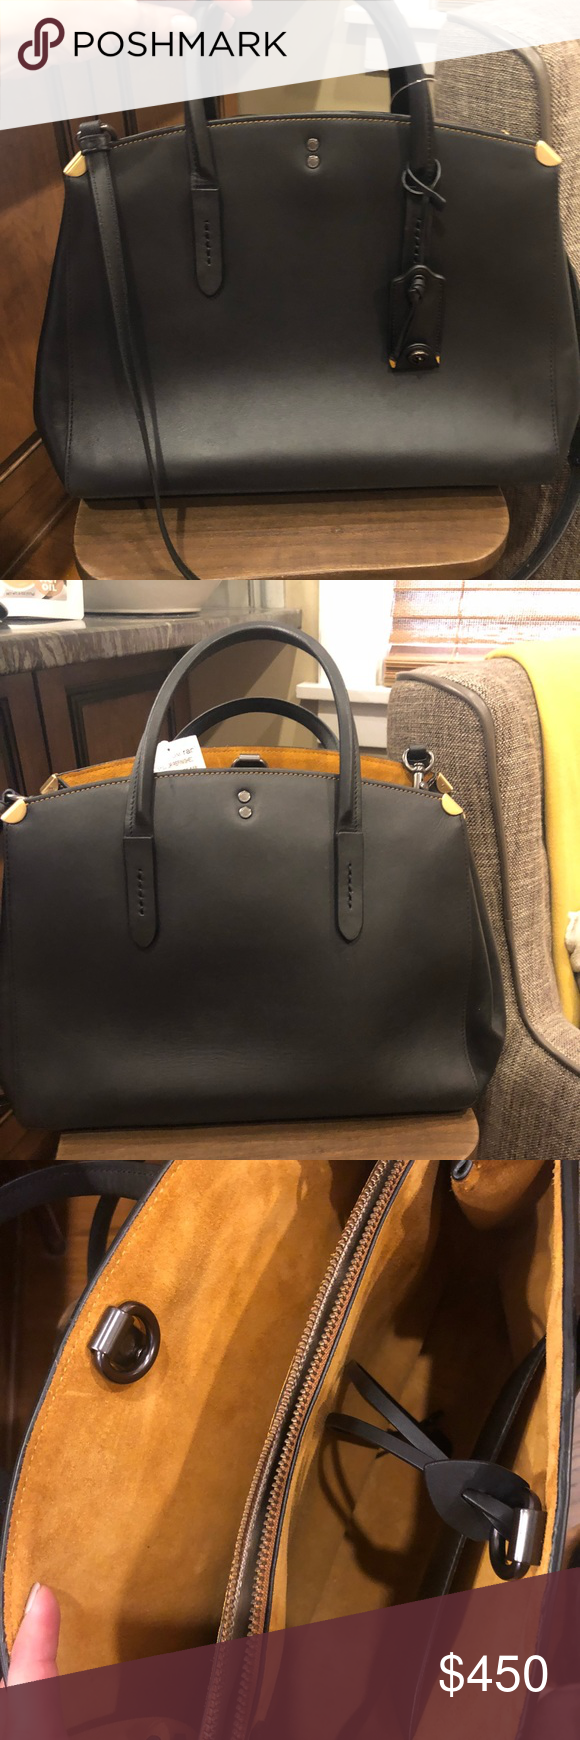 994dd26387bc Coach Cooper Carryall NWOT Gorgeous Coach black glove tanned leather bag. Cooper  Carryall. Still currently on their website for  595.